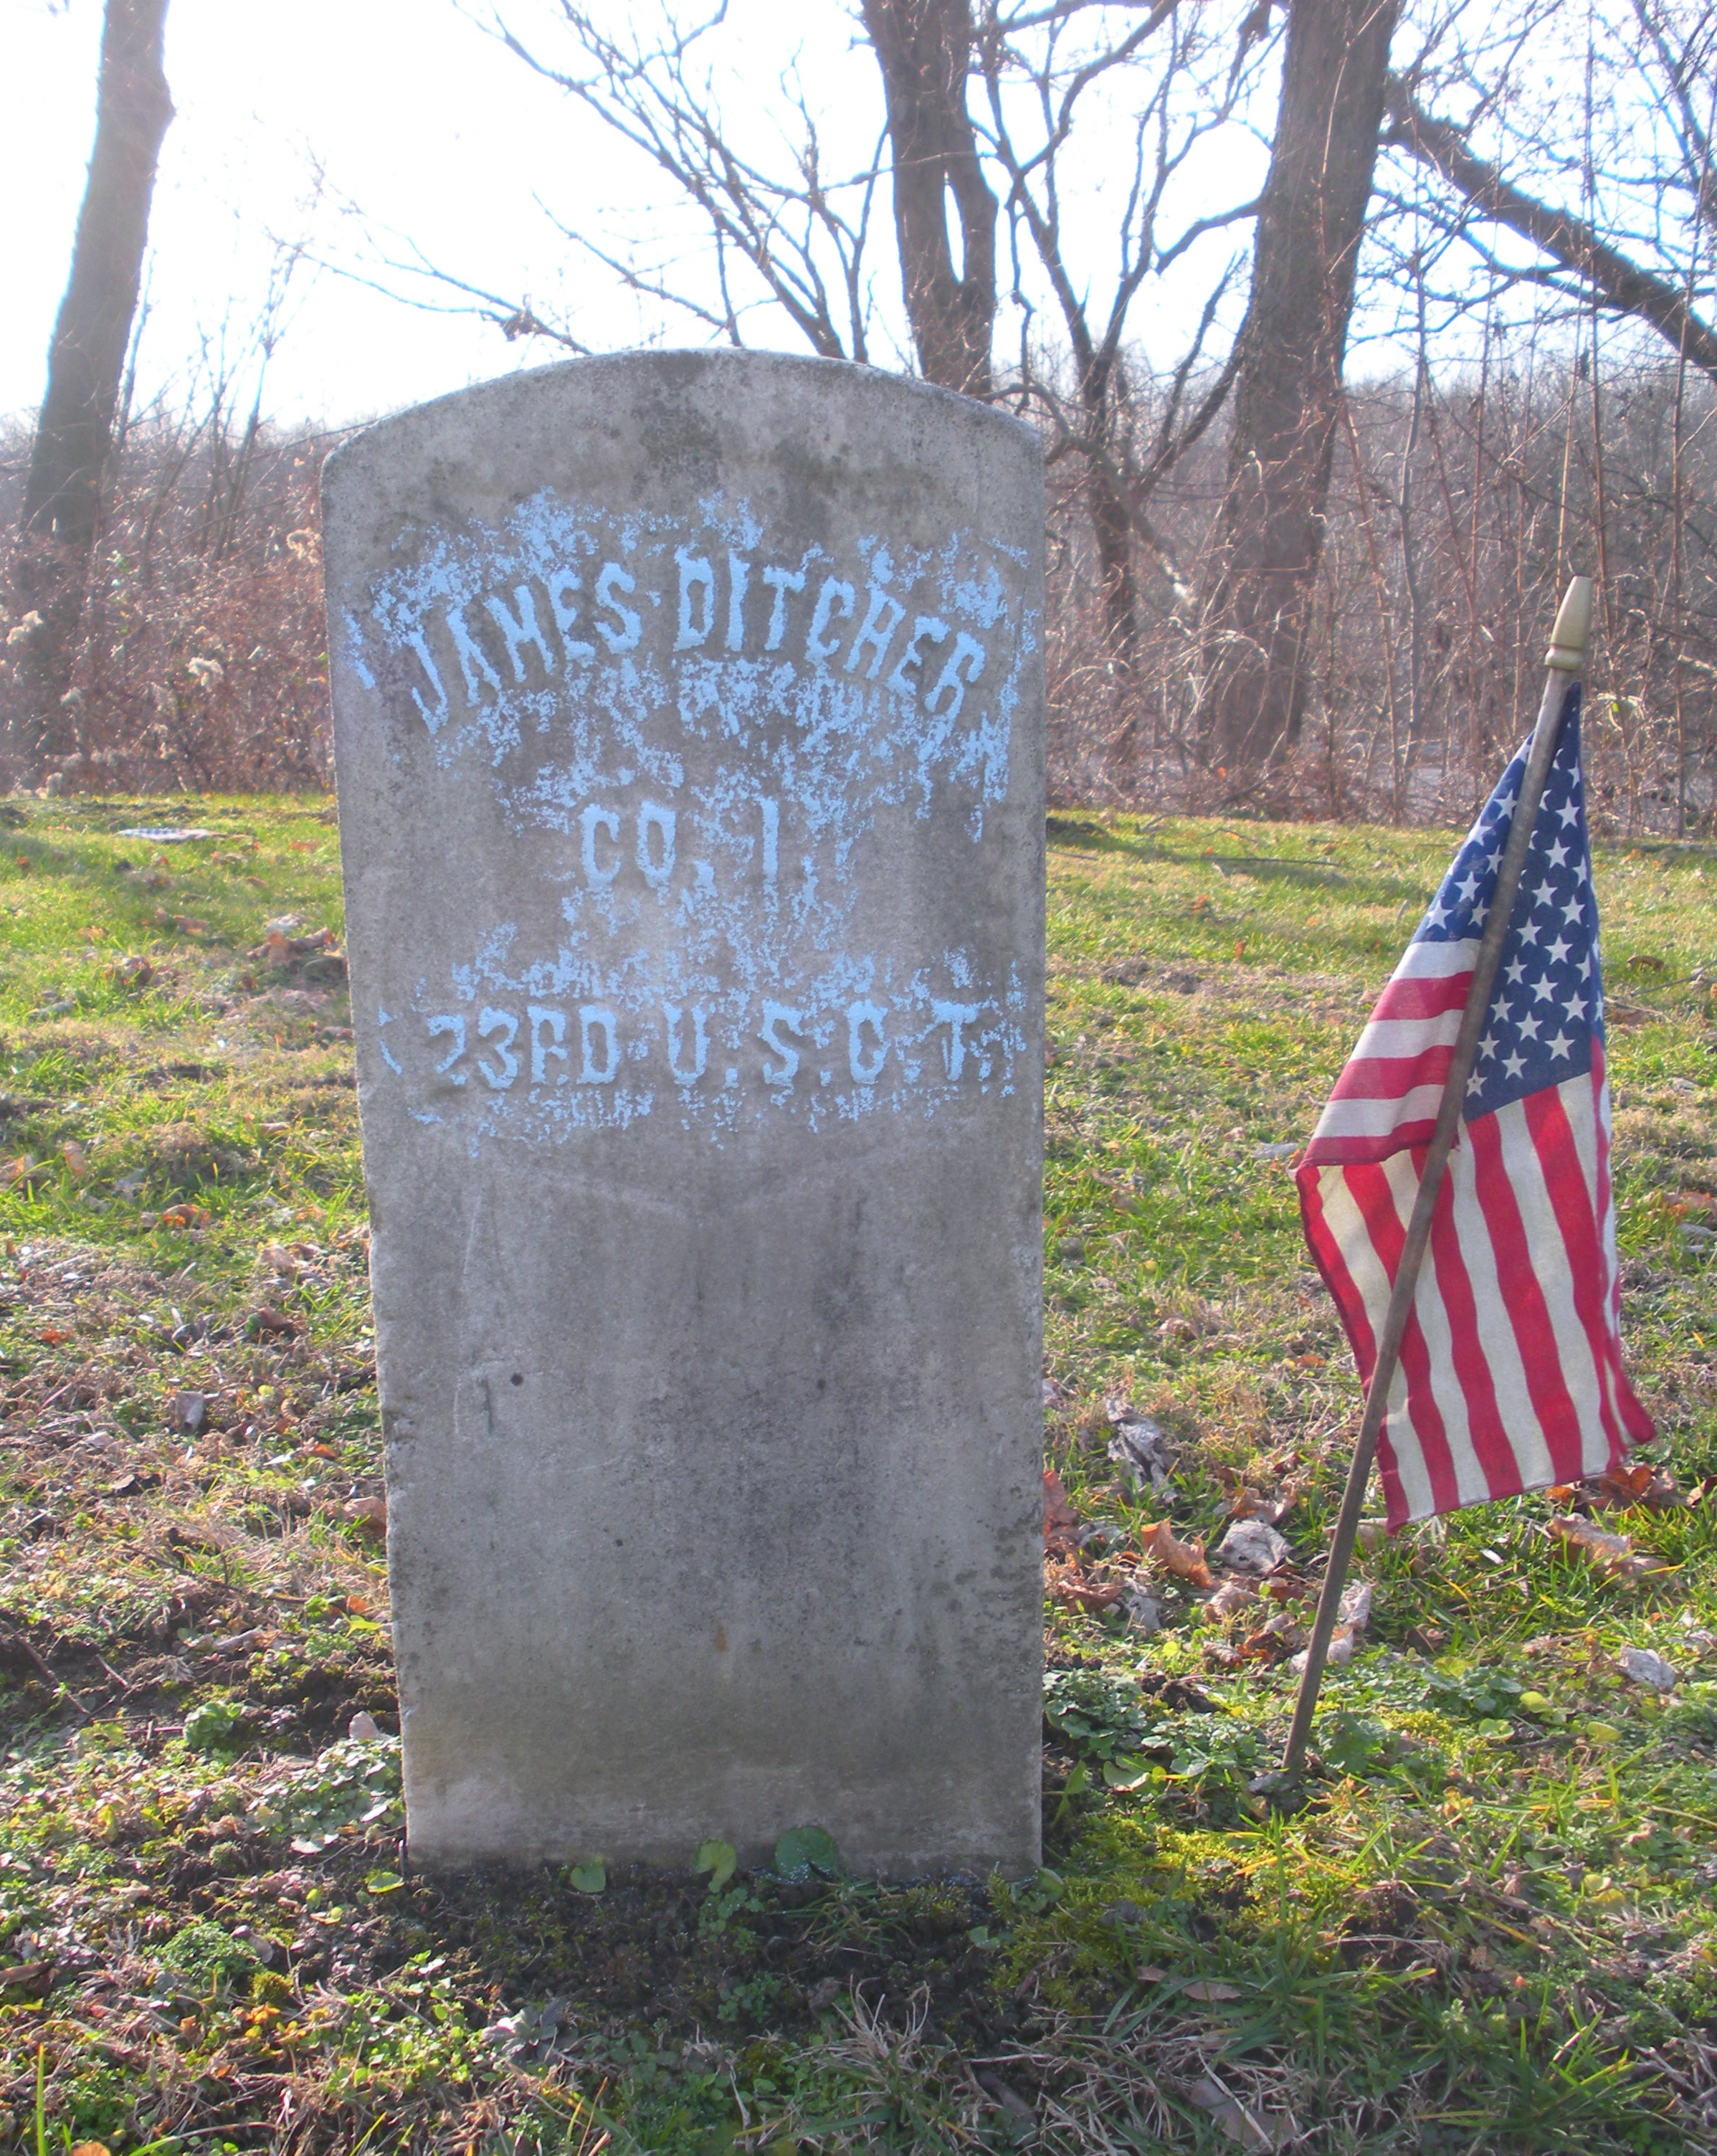 Tombstone of Jim Ditcher in Woodland Cemetery, Ironton